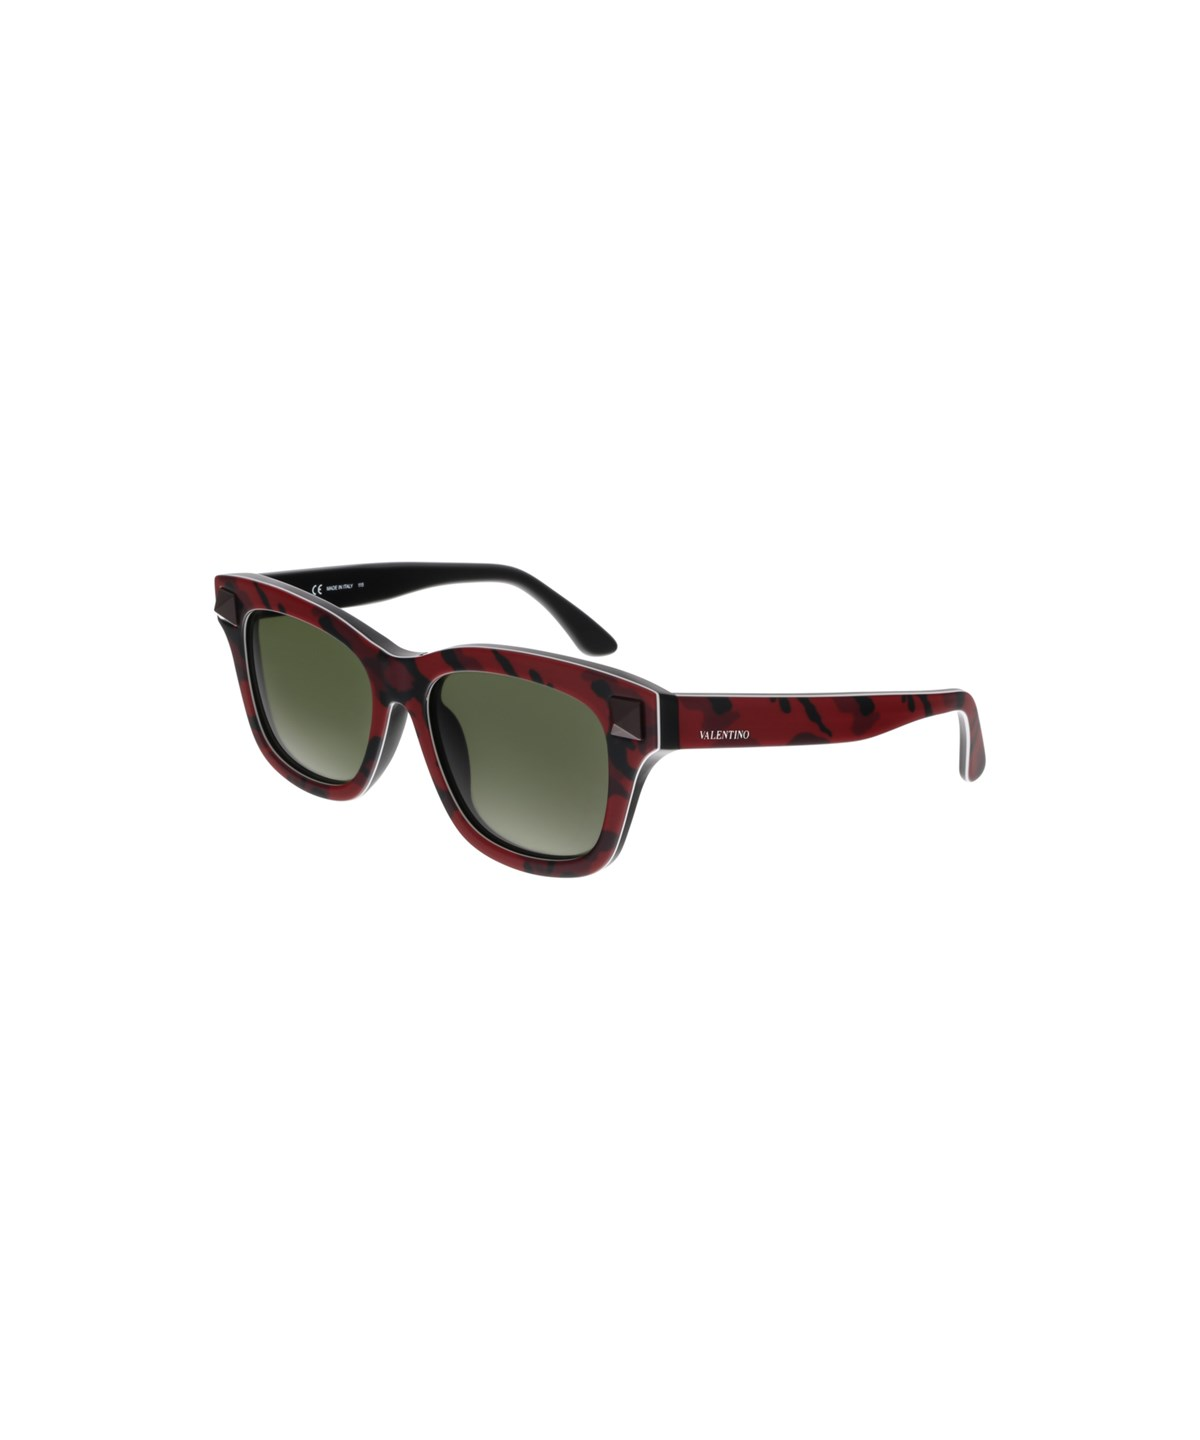 V670SC 638 CAMOUFLAGE RED CATEYE SUNGLASSES